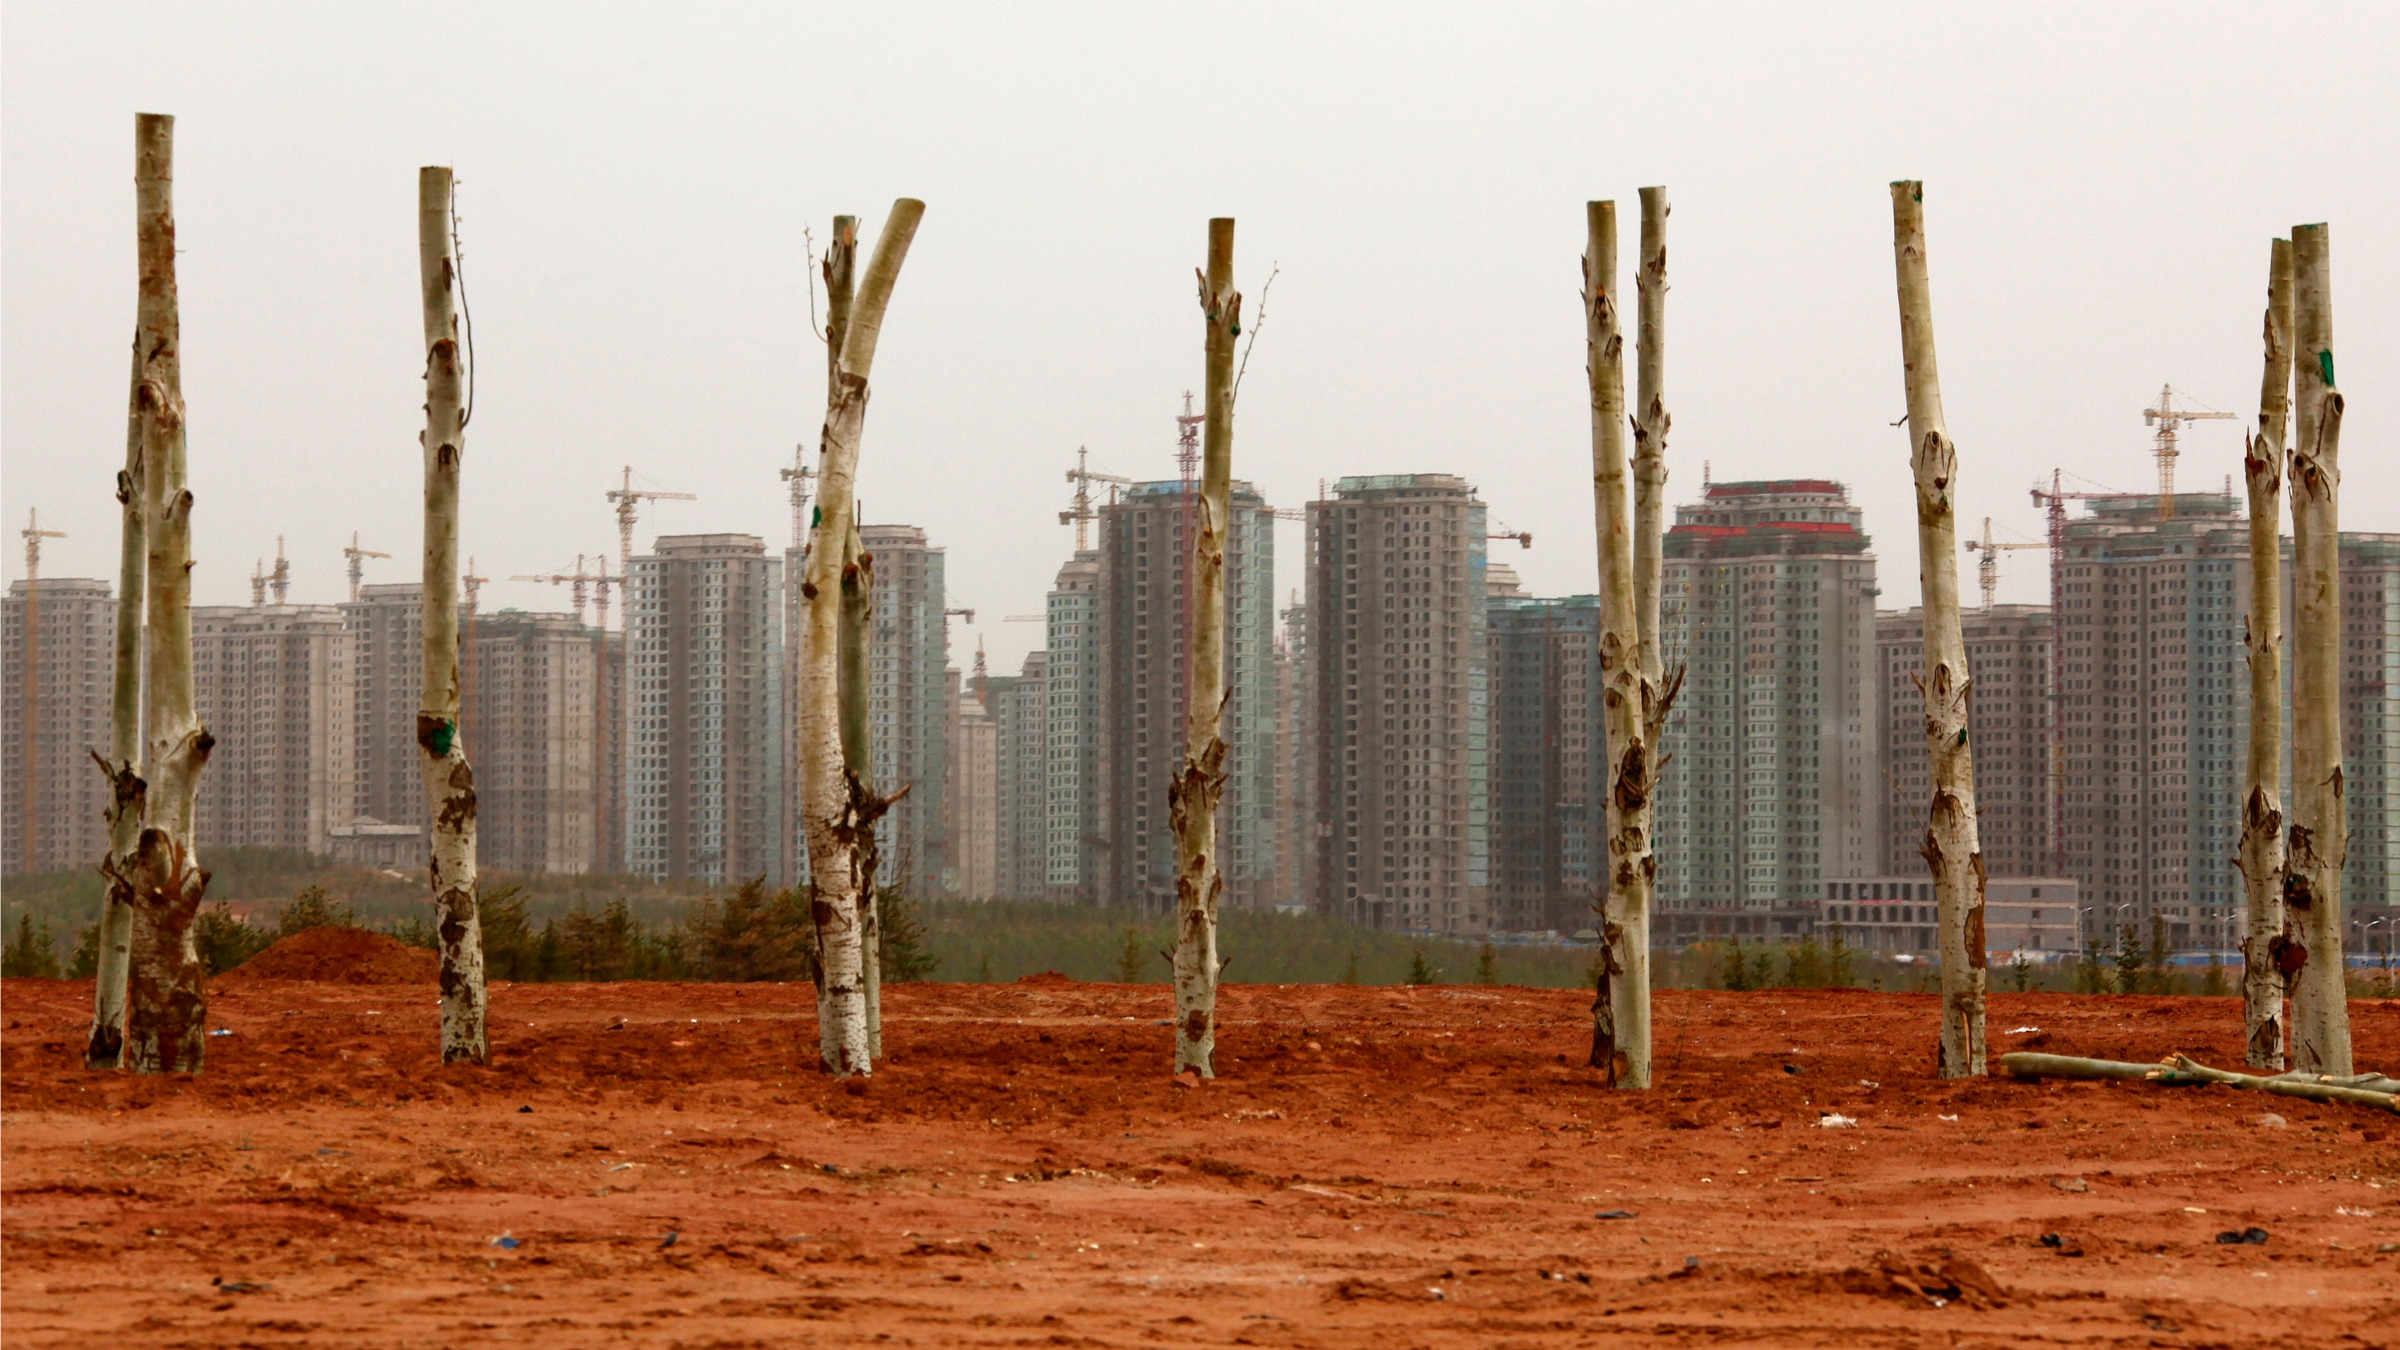 Newly planted trees line a new street in front of residential buildings under construction in the Kangbashi district of the town of Ordos. the estimated one million people that were expected to move into or visit the district's now decaying buildings, have yet to appear.